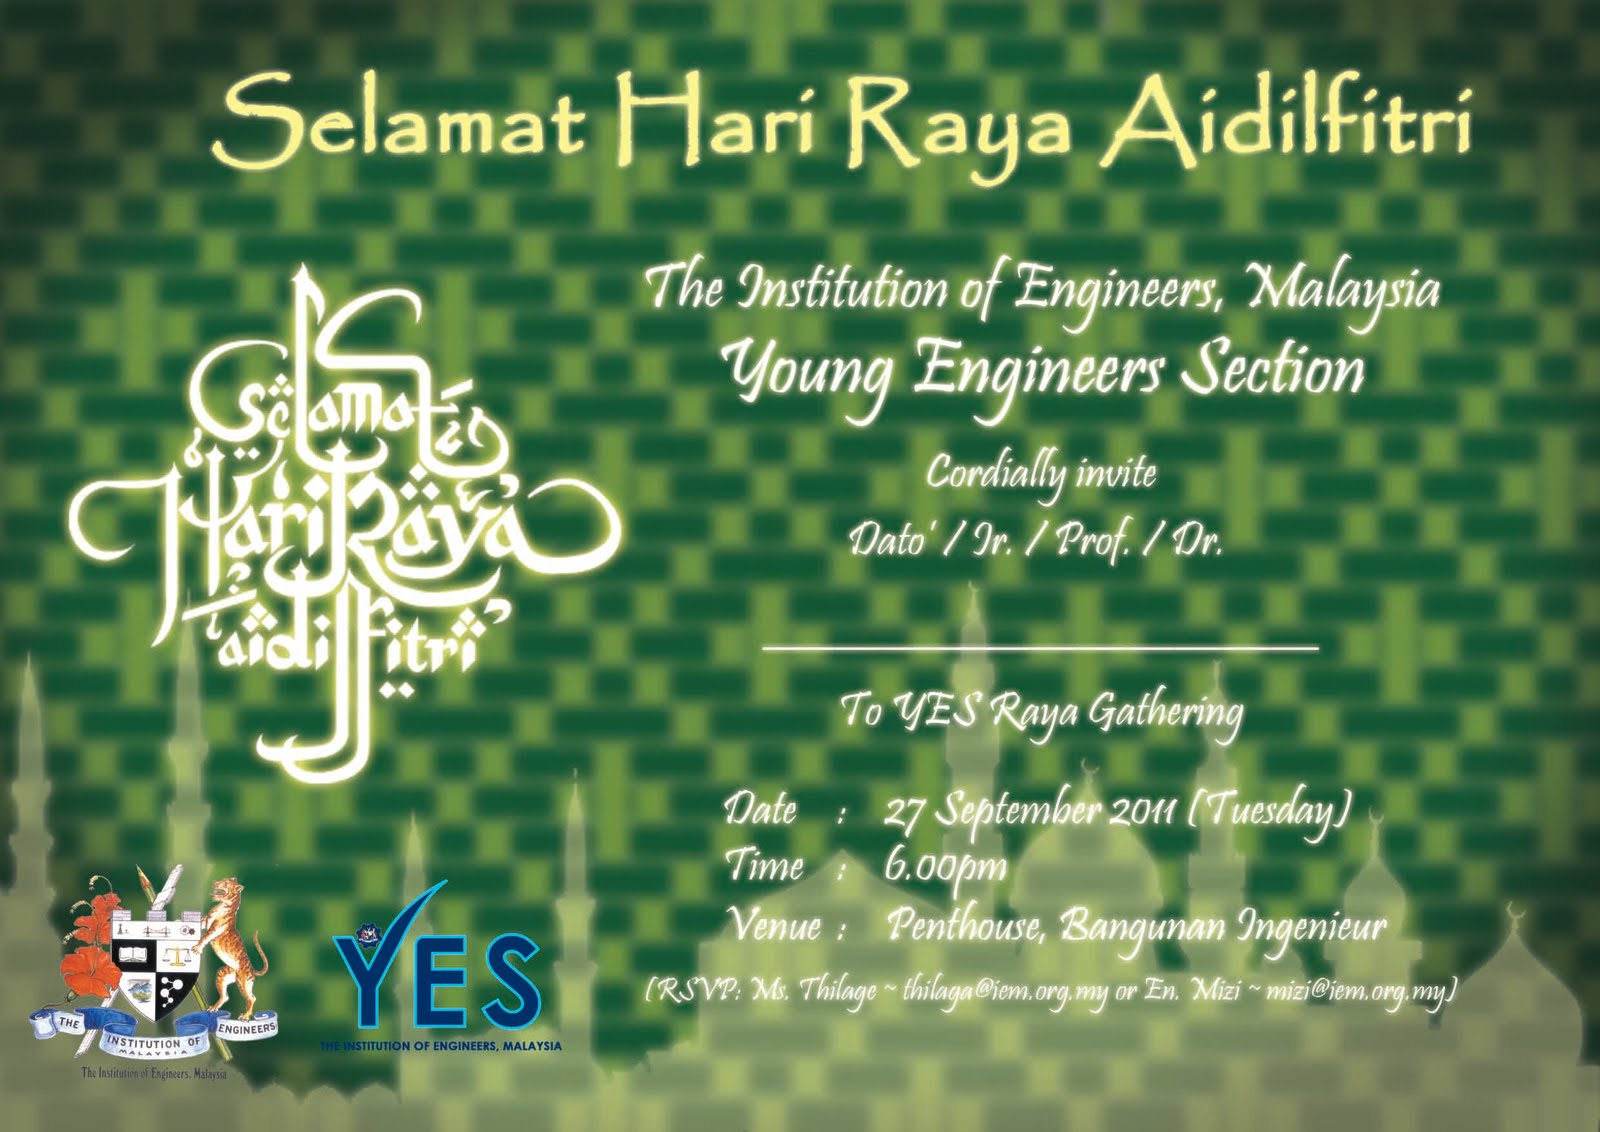 Iem gs yes event raya gathering invitation event raya gathering invitation stopboris Choice Image